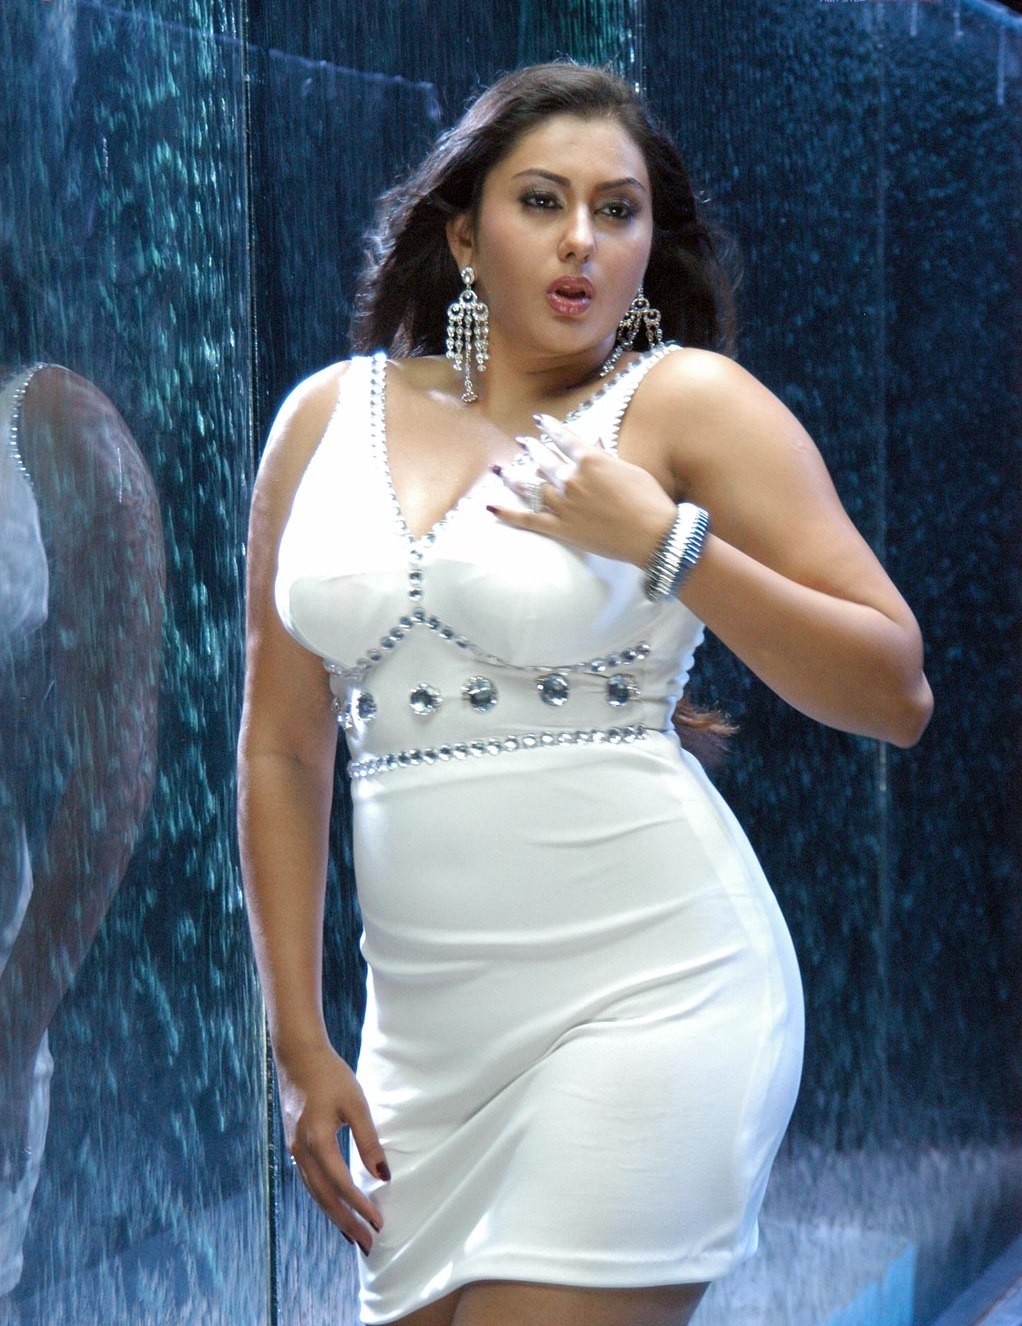 Indian Girl Full Hd Wallpaper Namitha Hot Wallpapers Exclusive Hd Photo Gallery Of